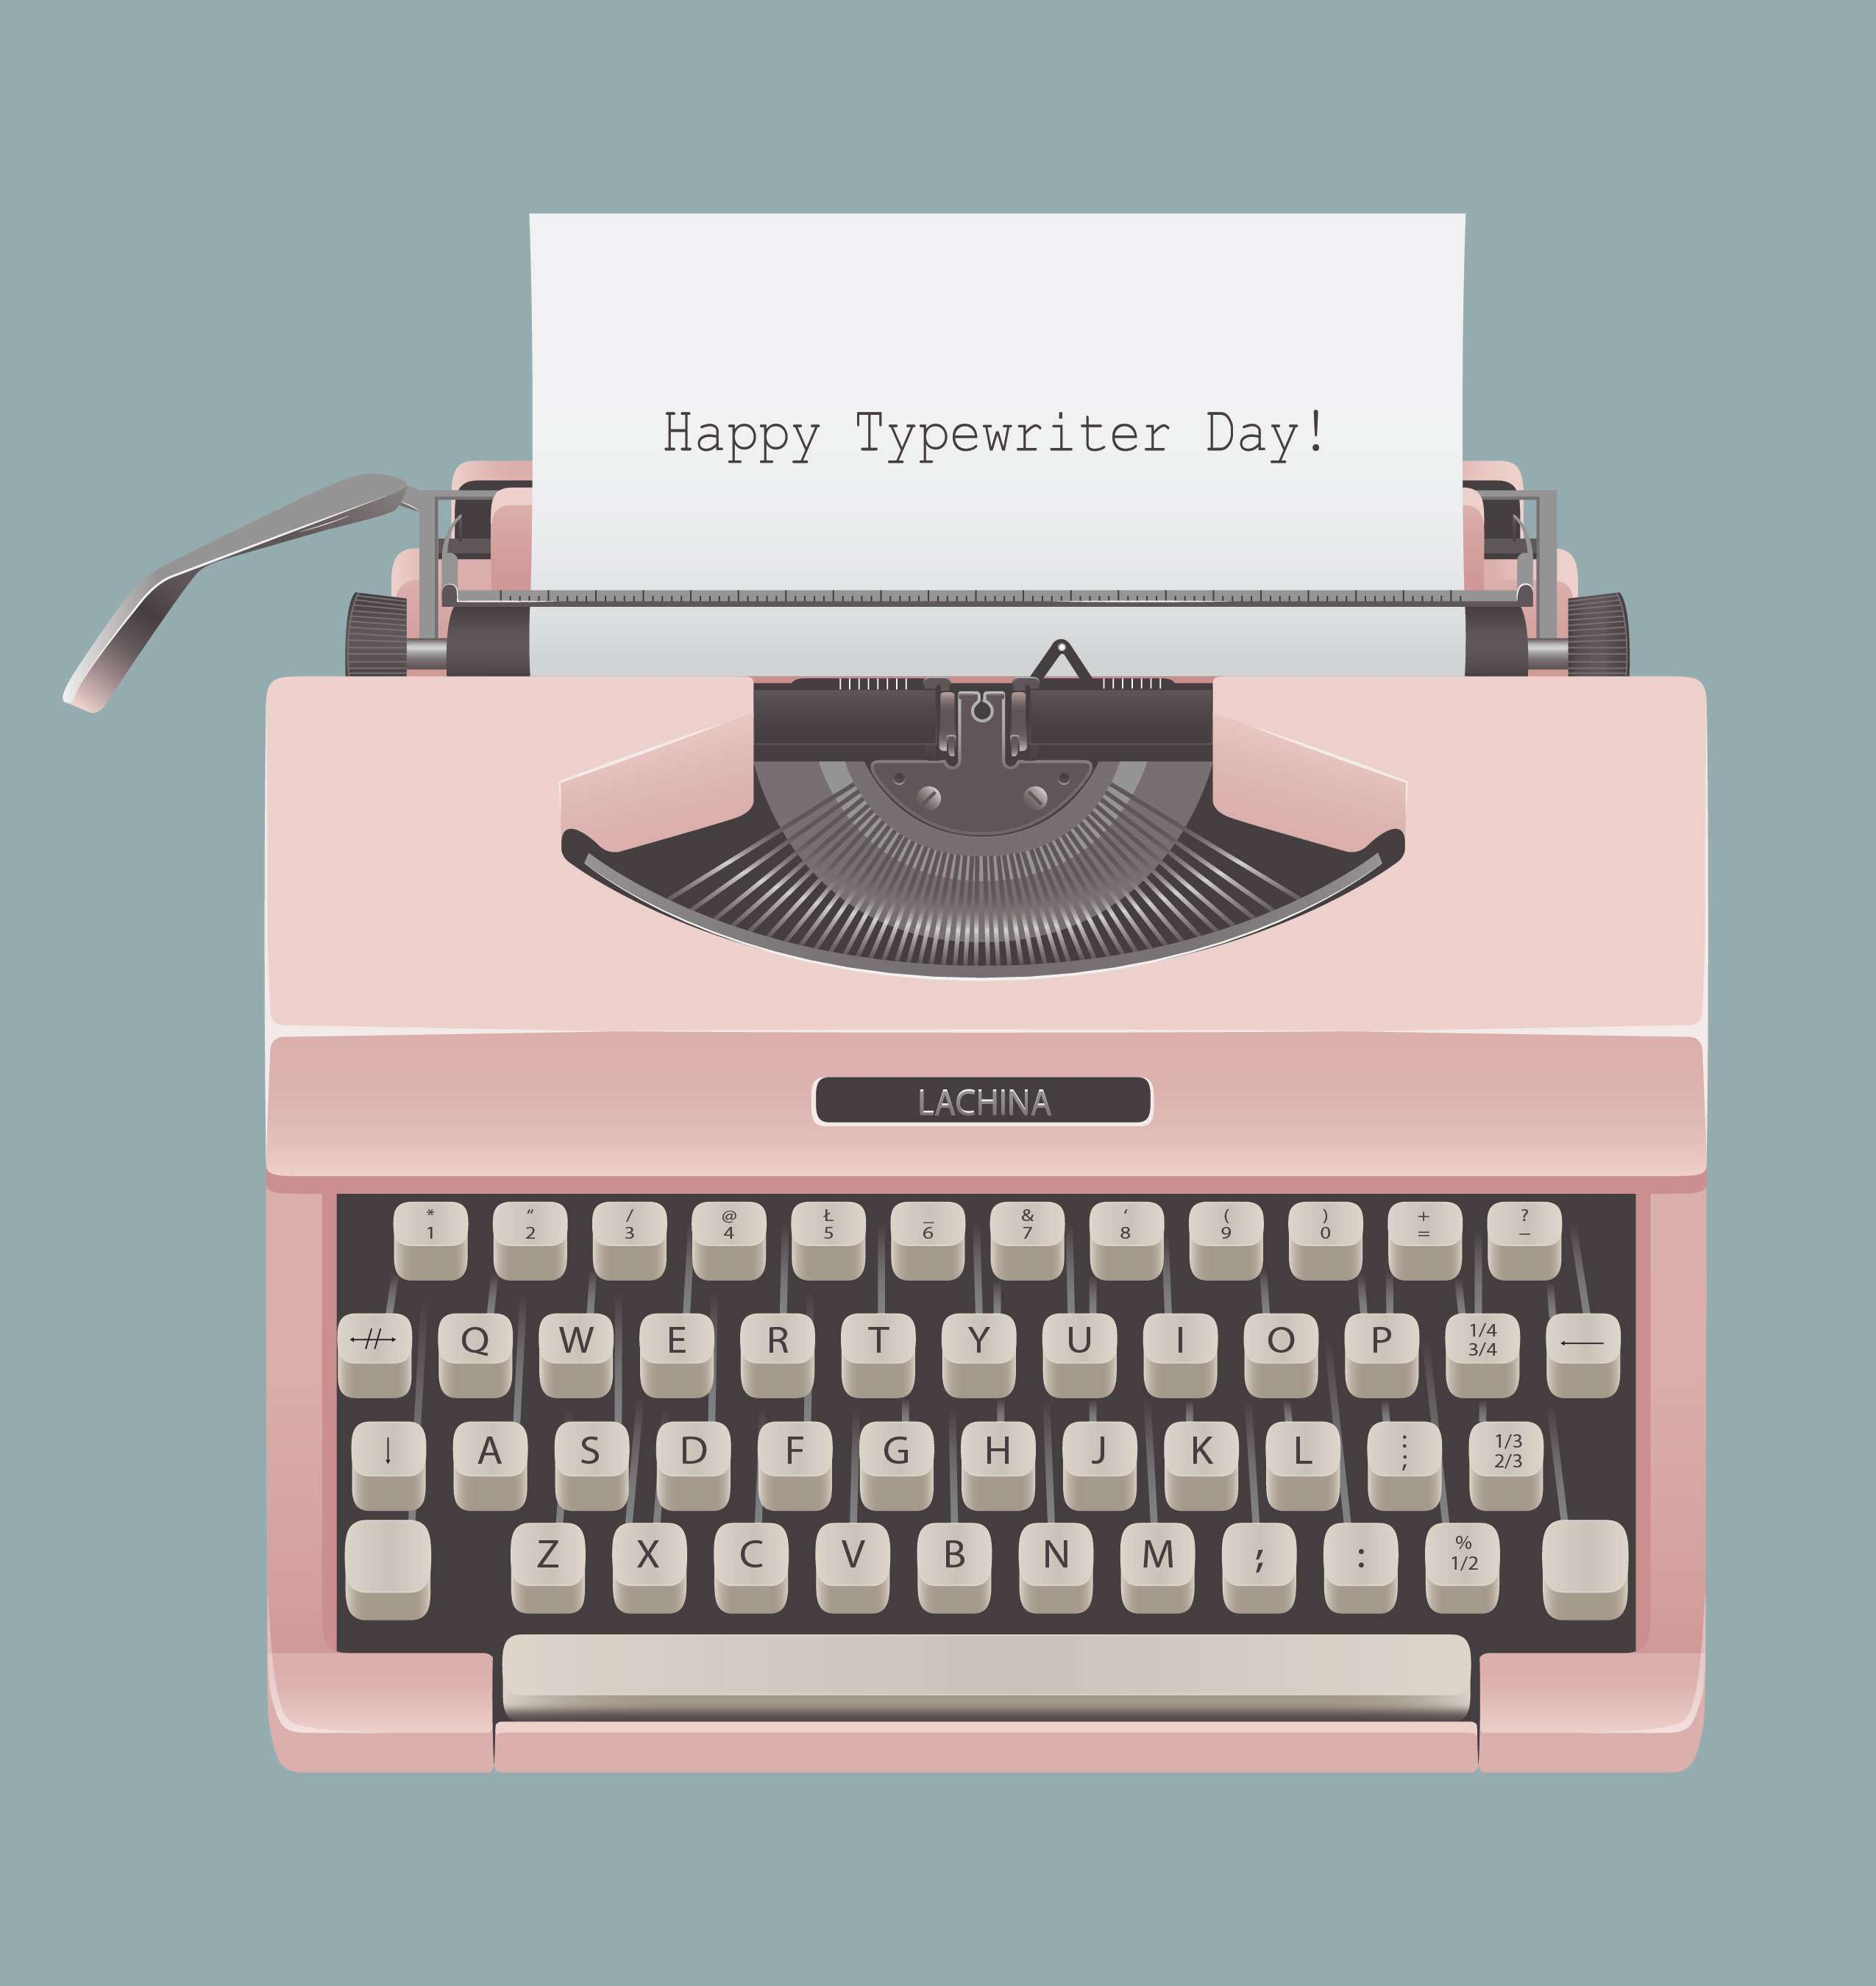 Typewriter Day